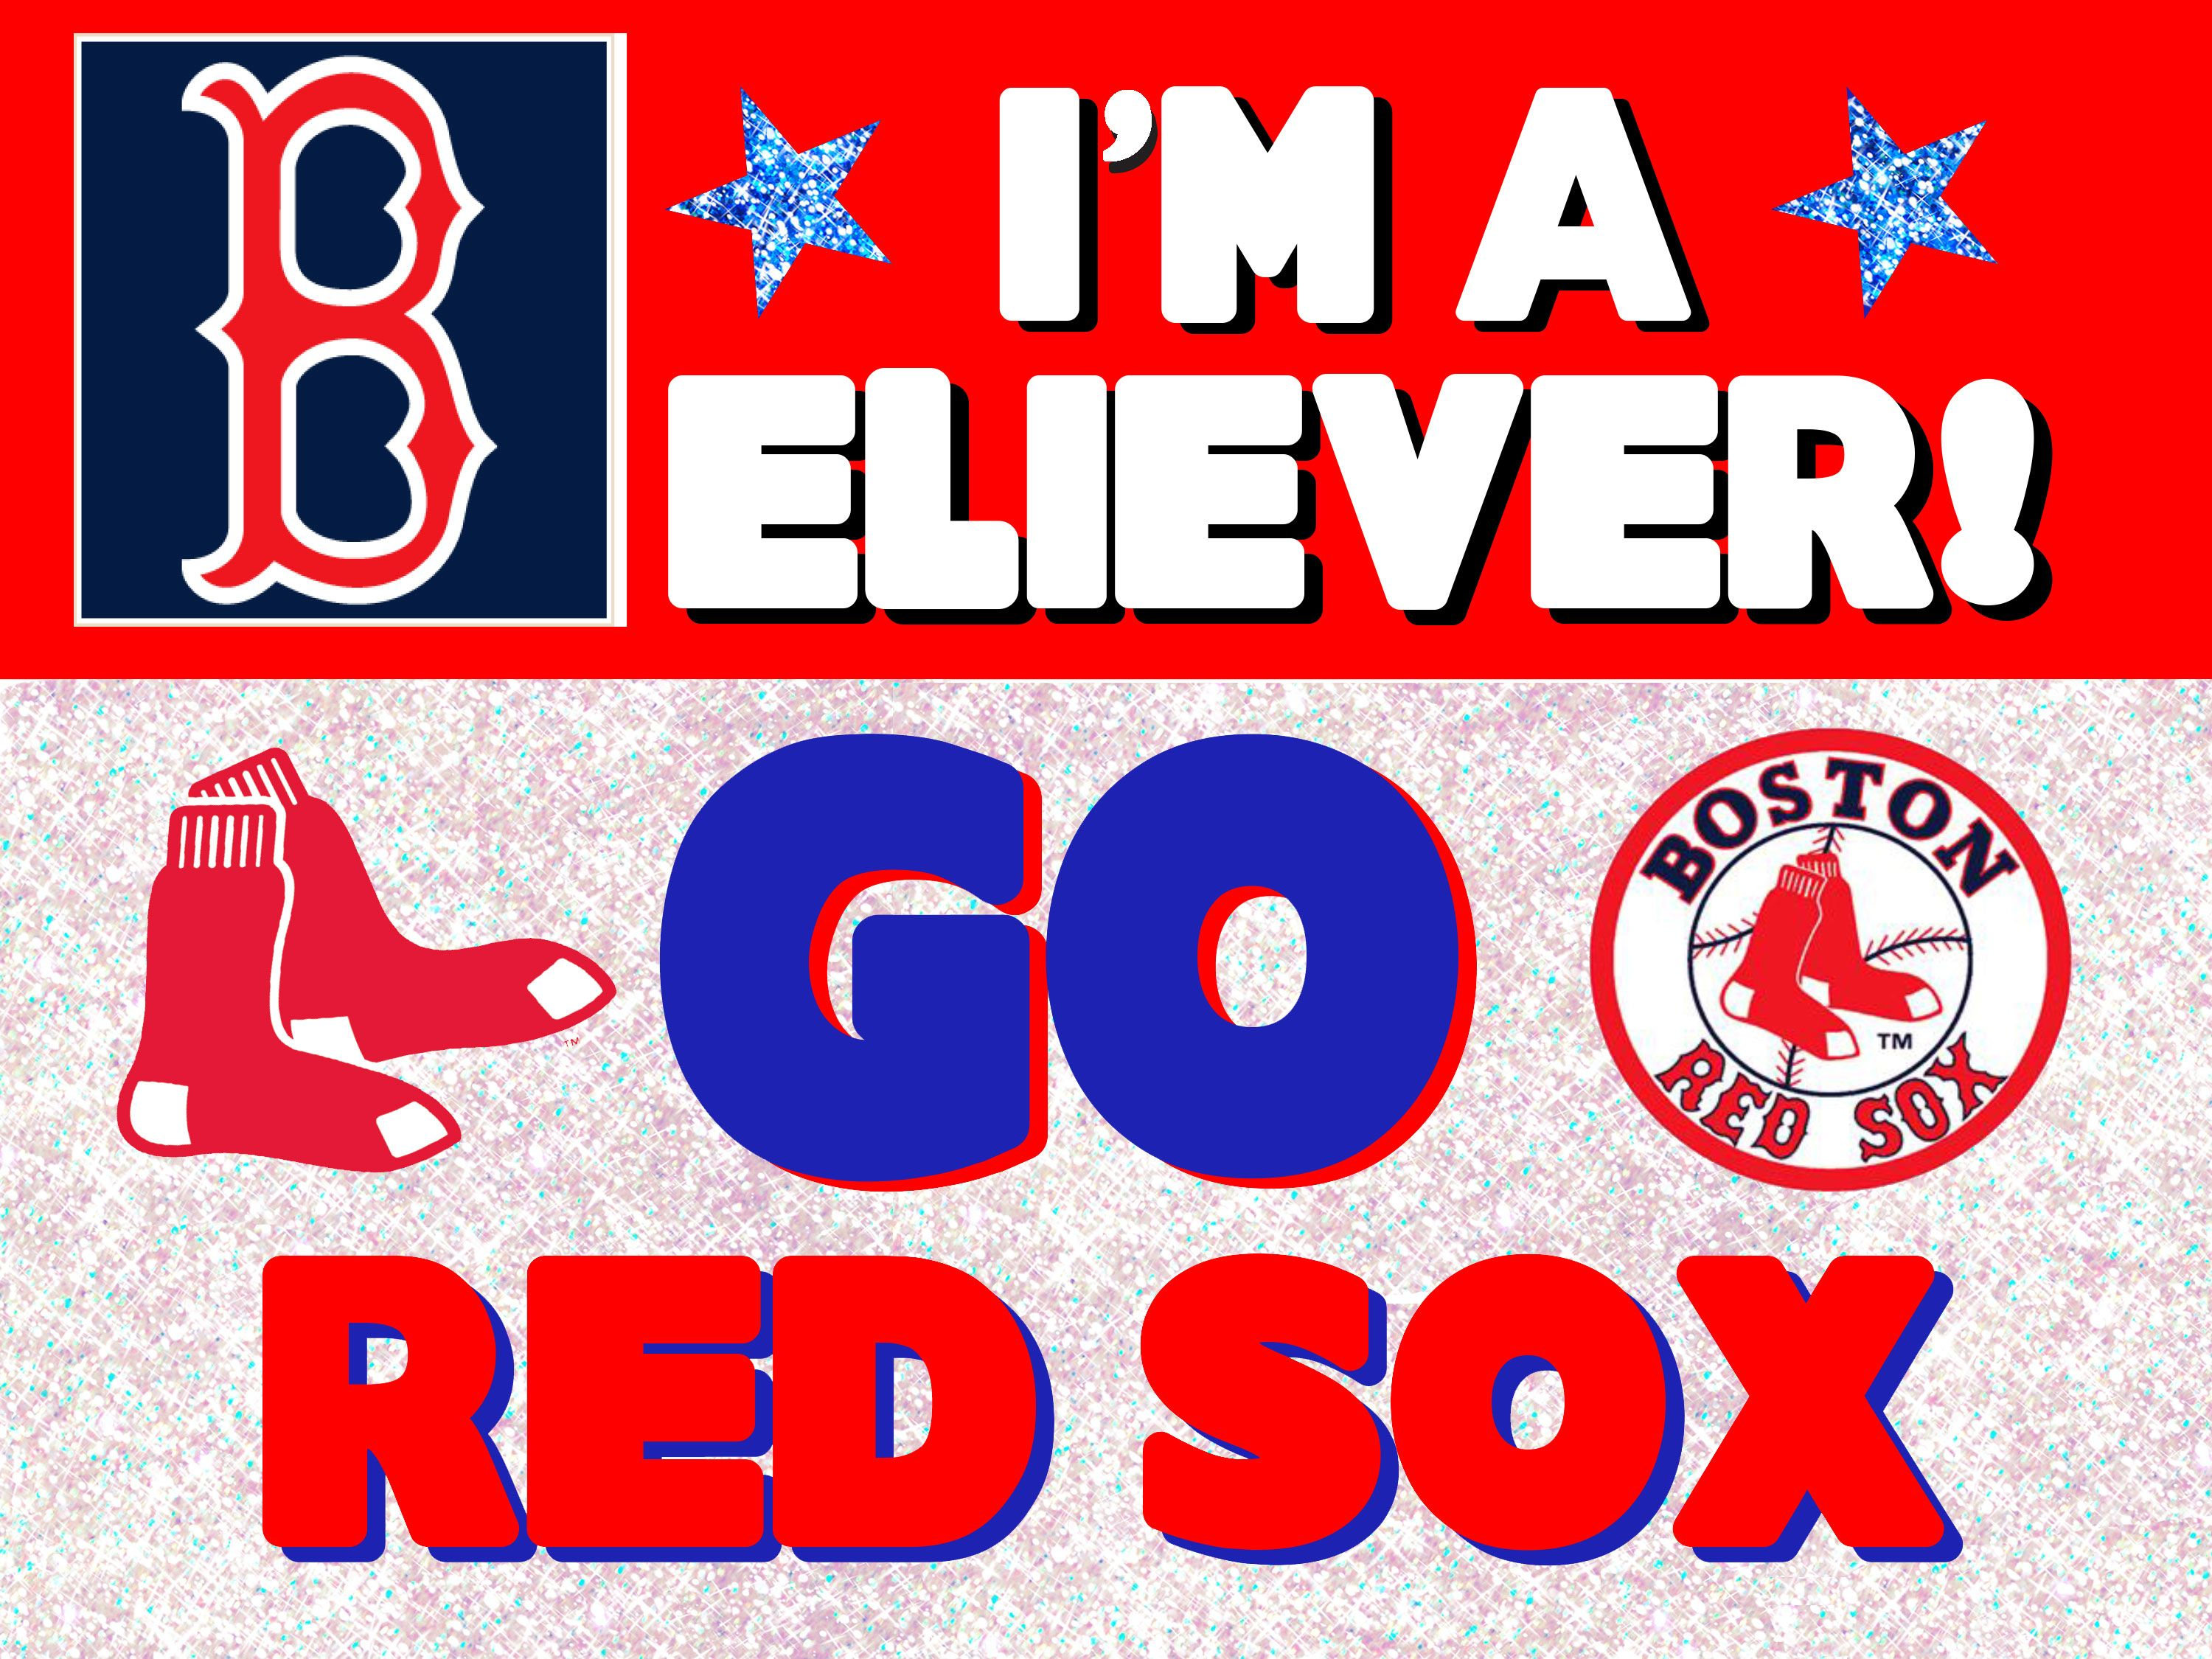 Game 3 TONIGHT!! Lets go for the sweep, Sox!! (With images